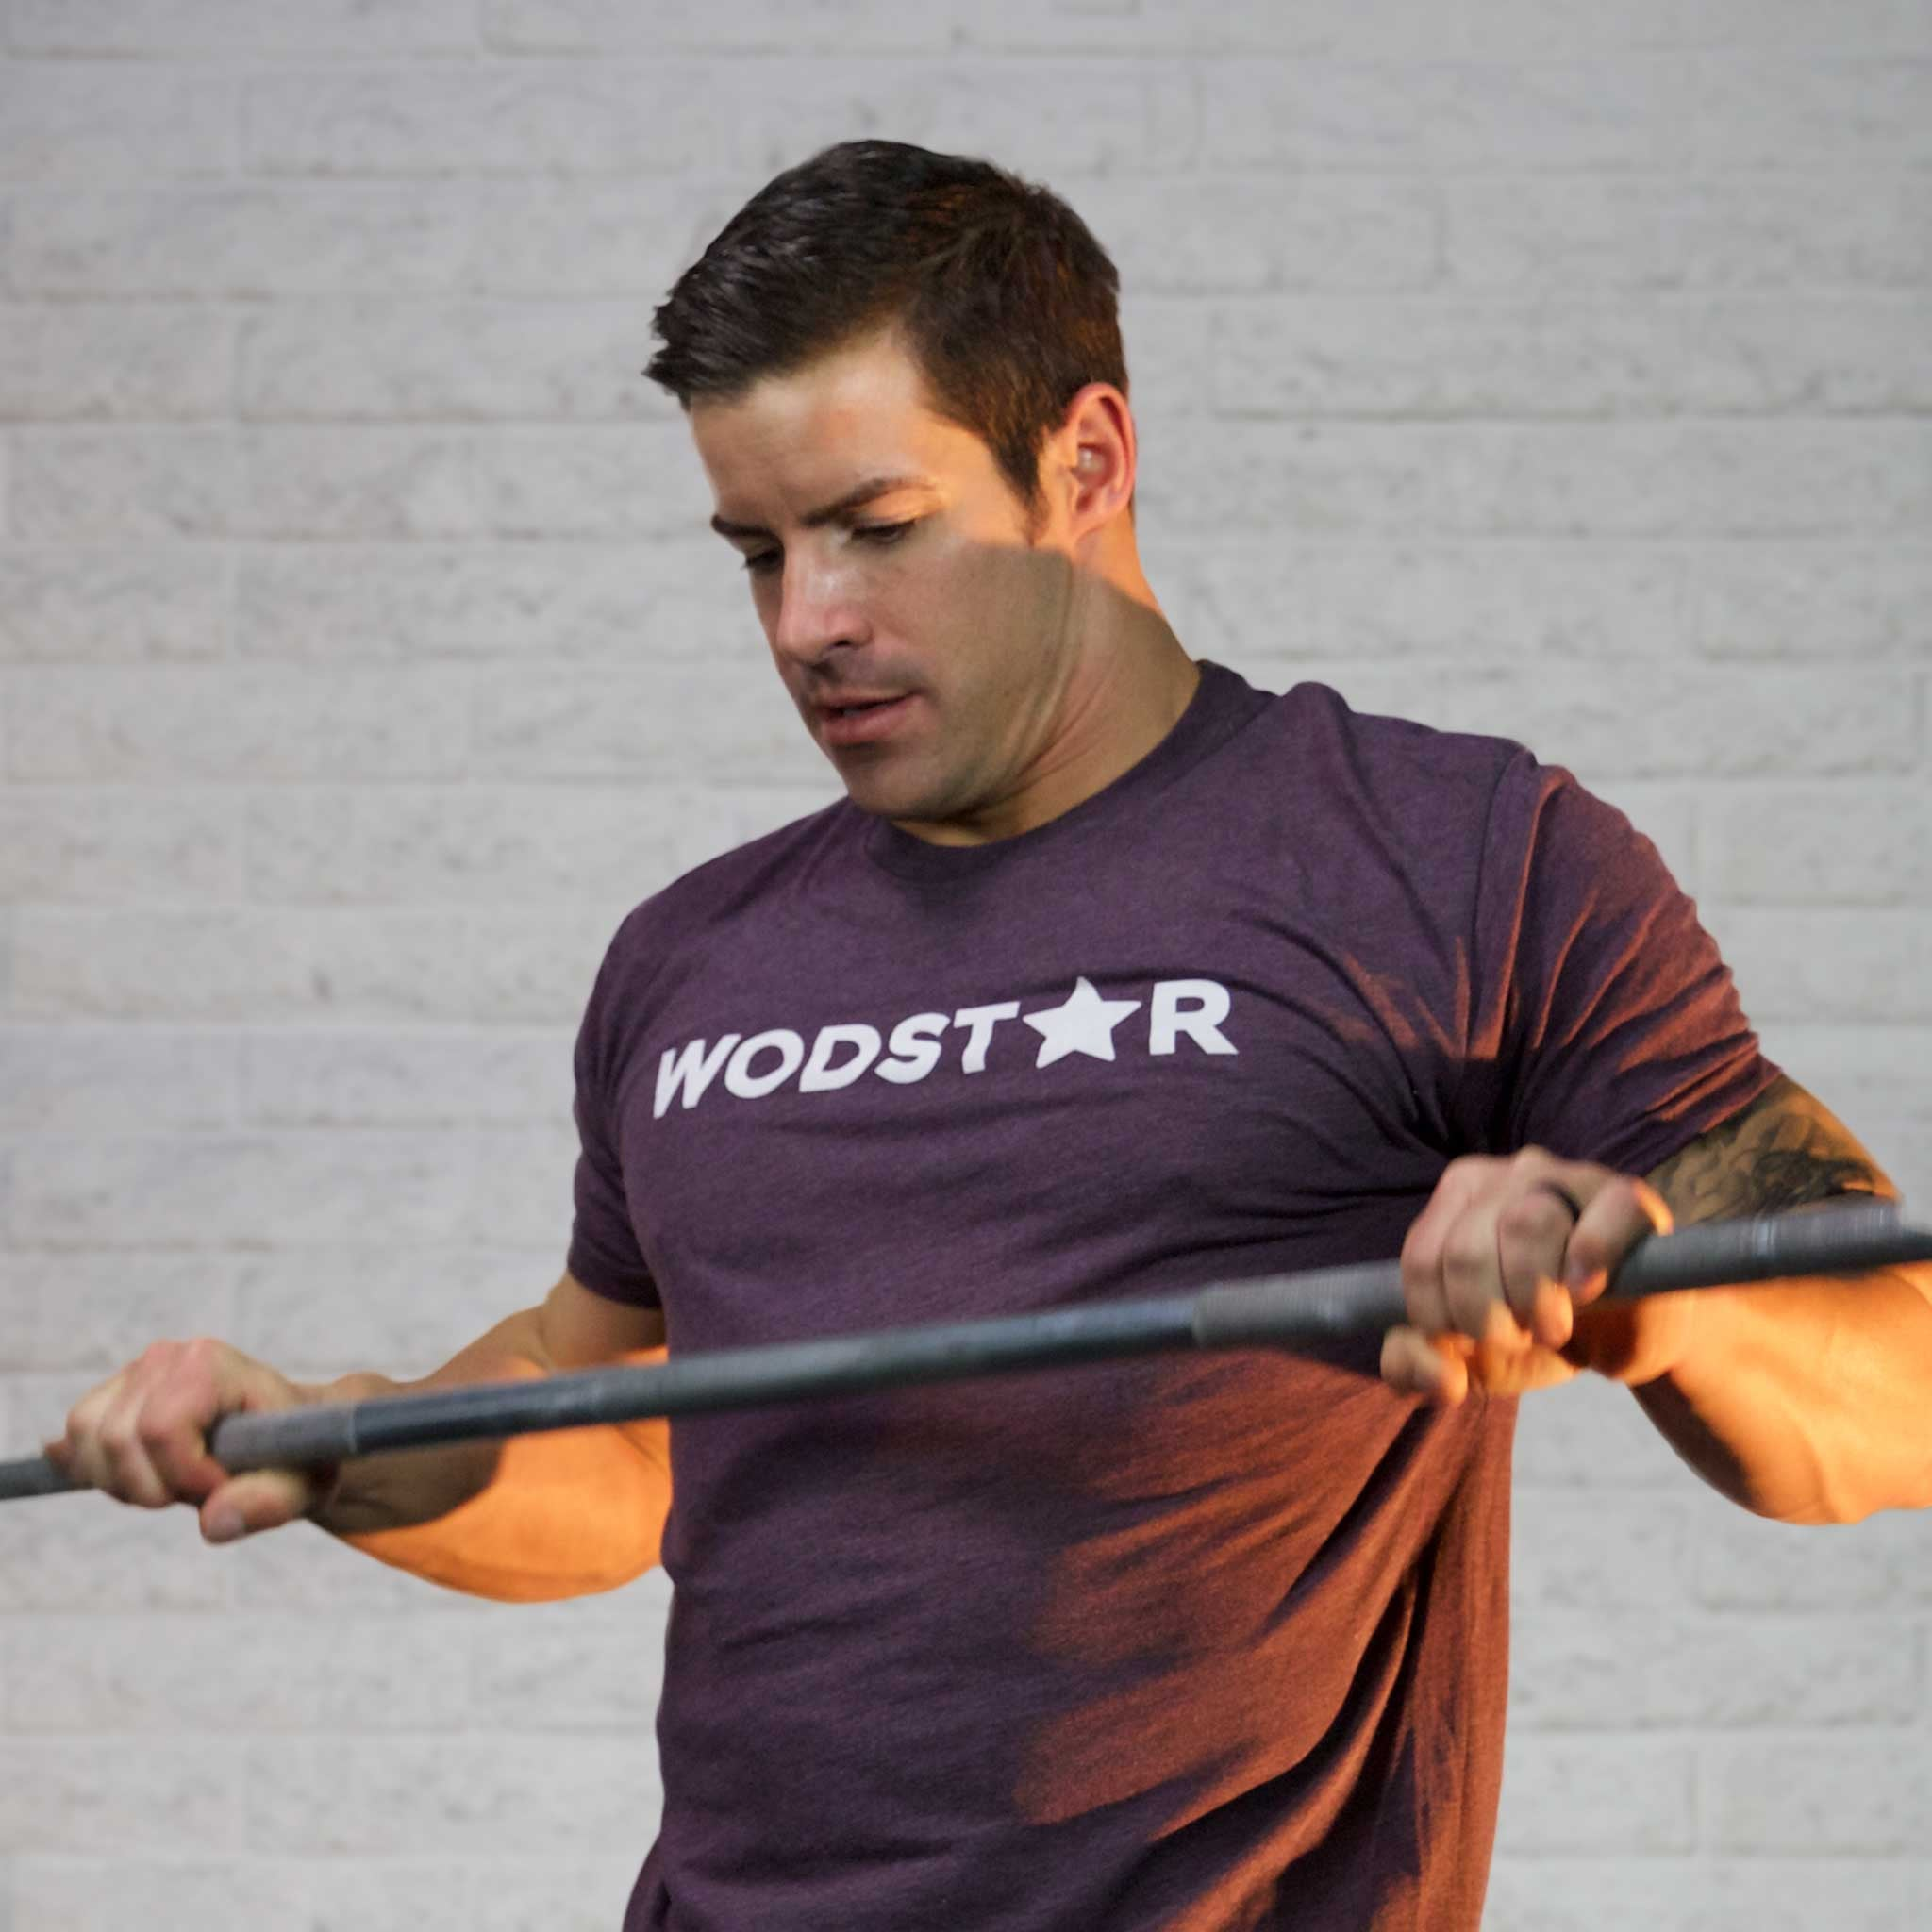 Men's Wodstar Workout T-Shirt: Vintage Purple